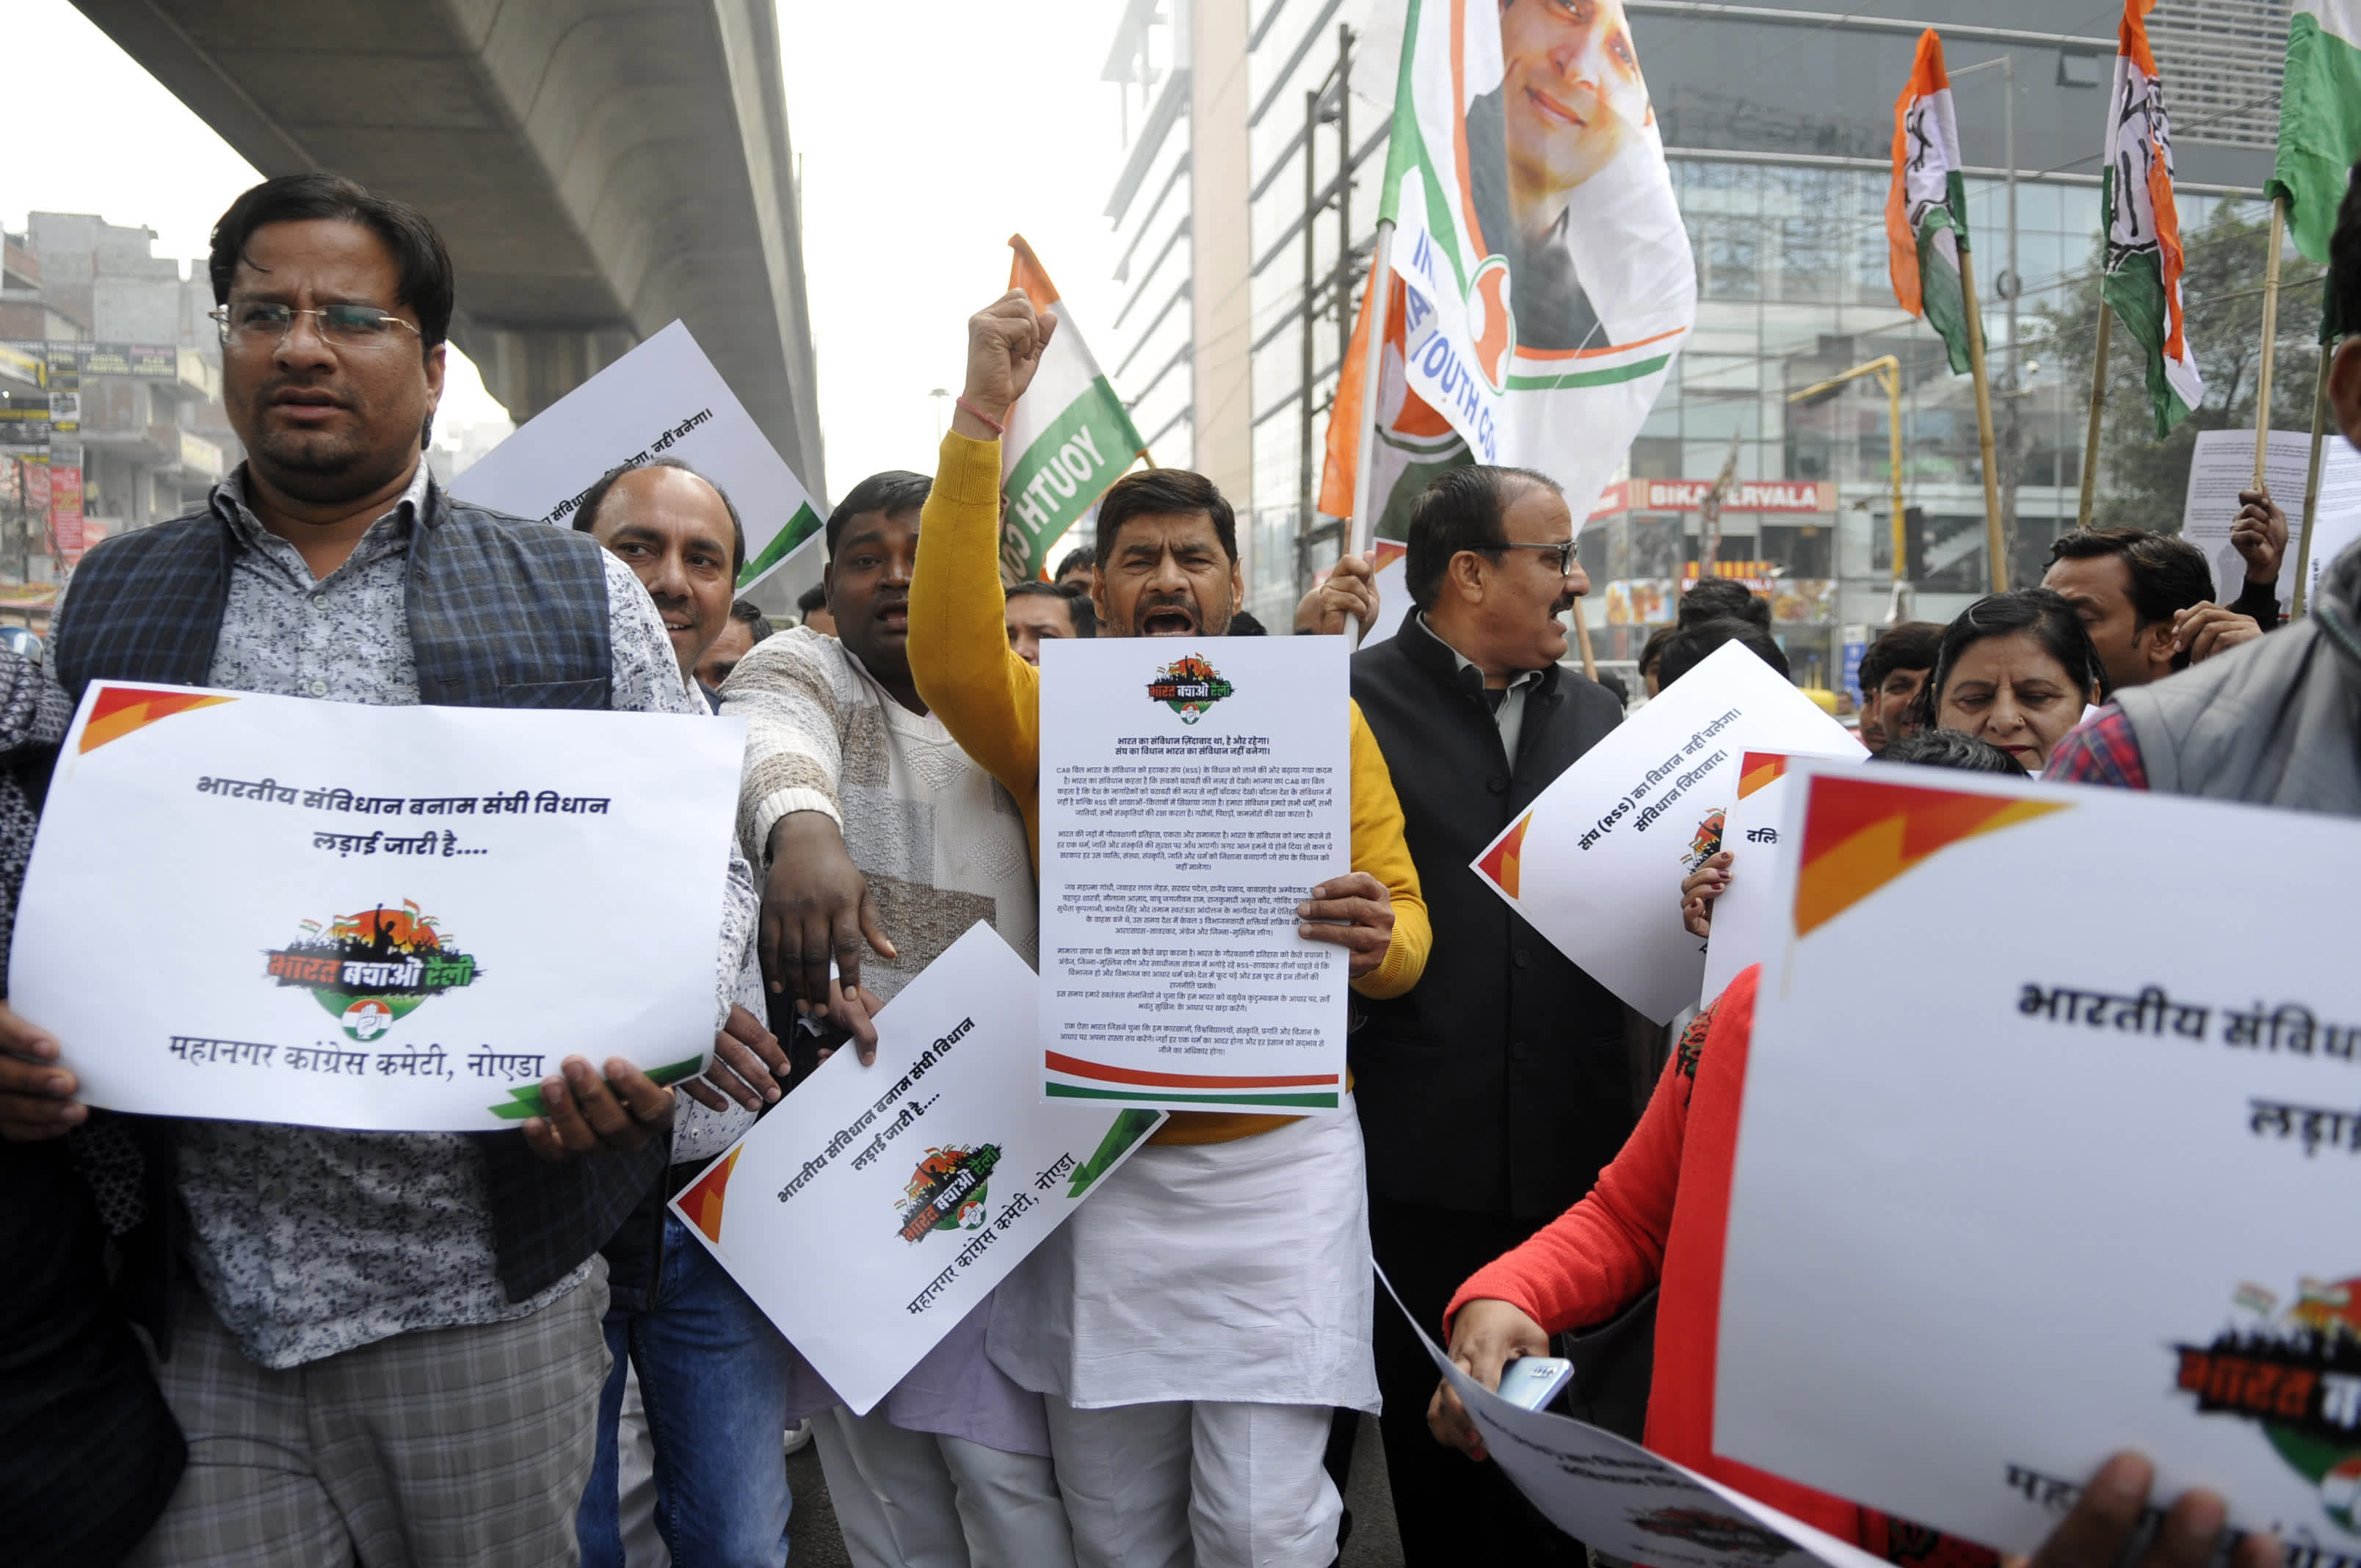 Hundreds arrested in India during days of protests over citizenship law